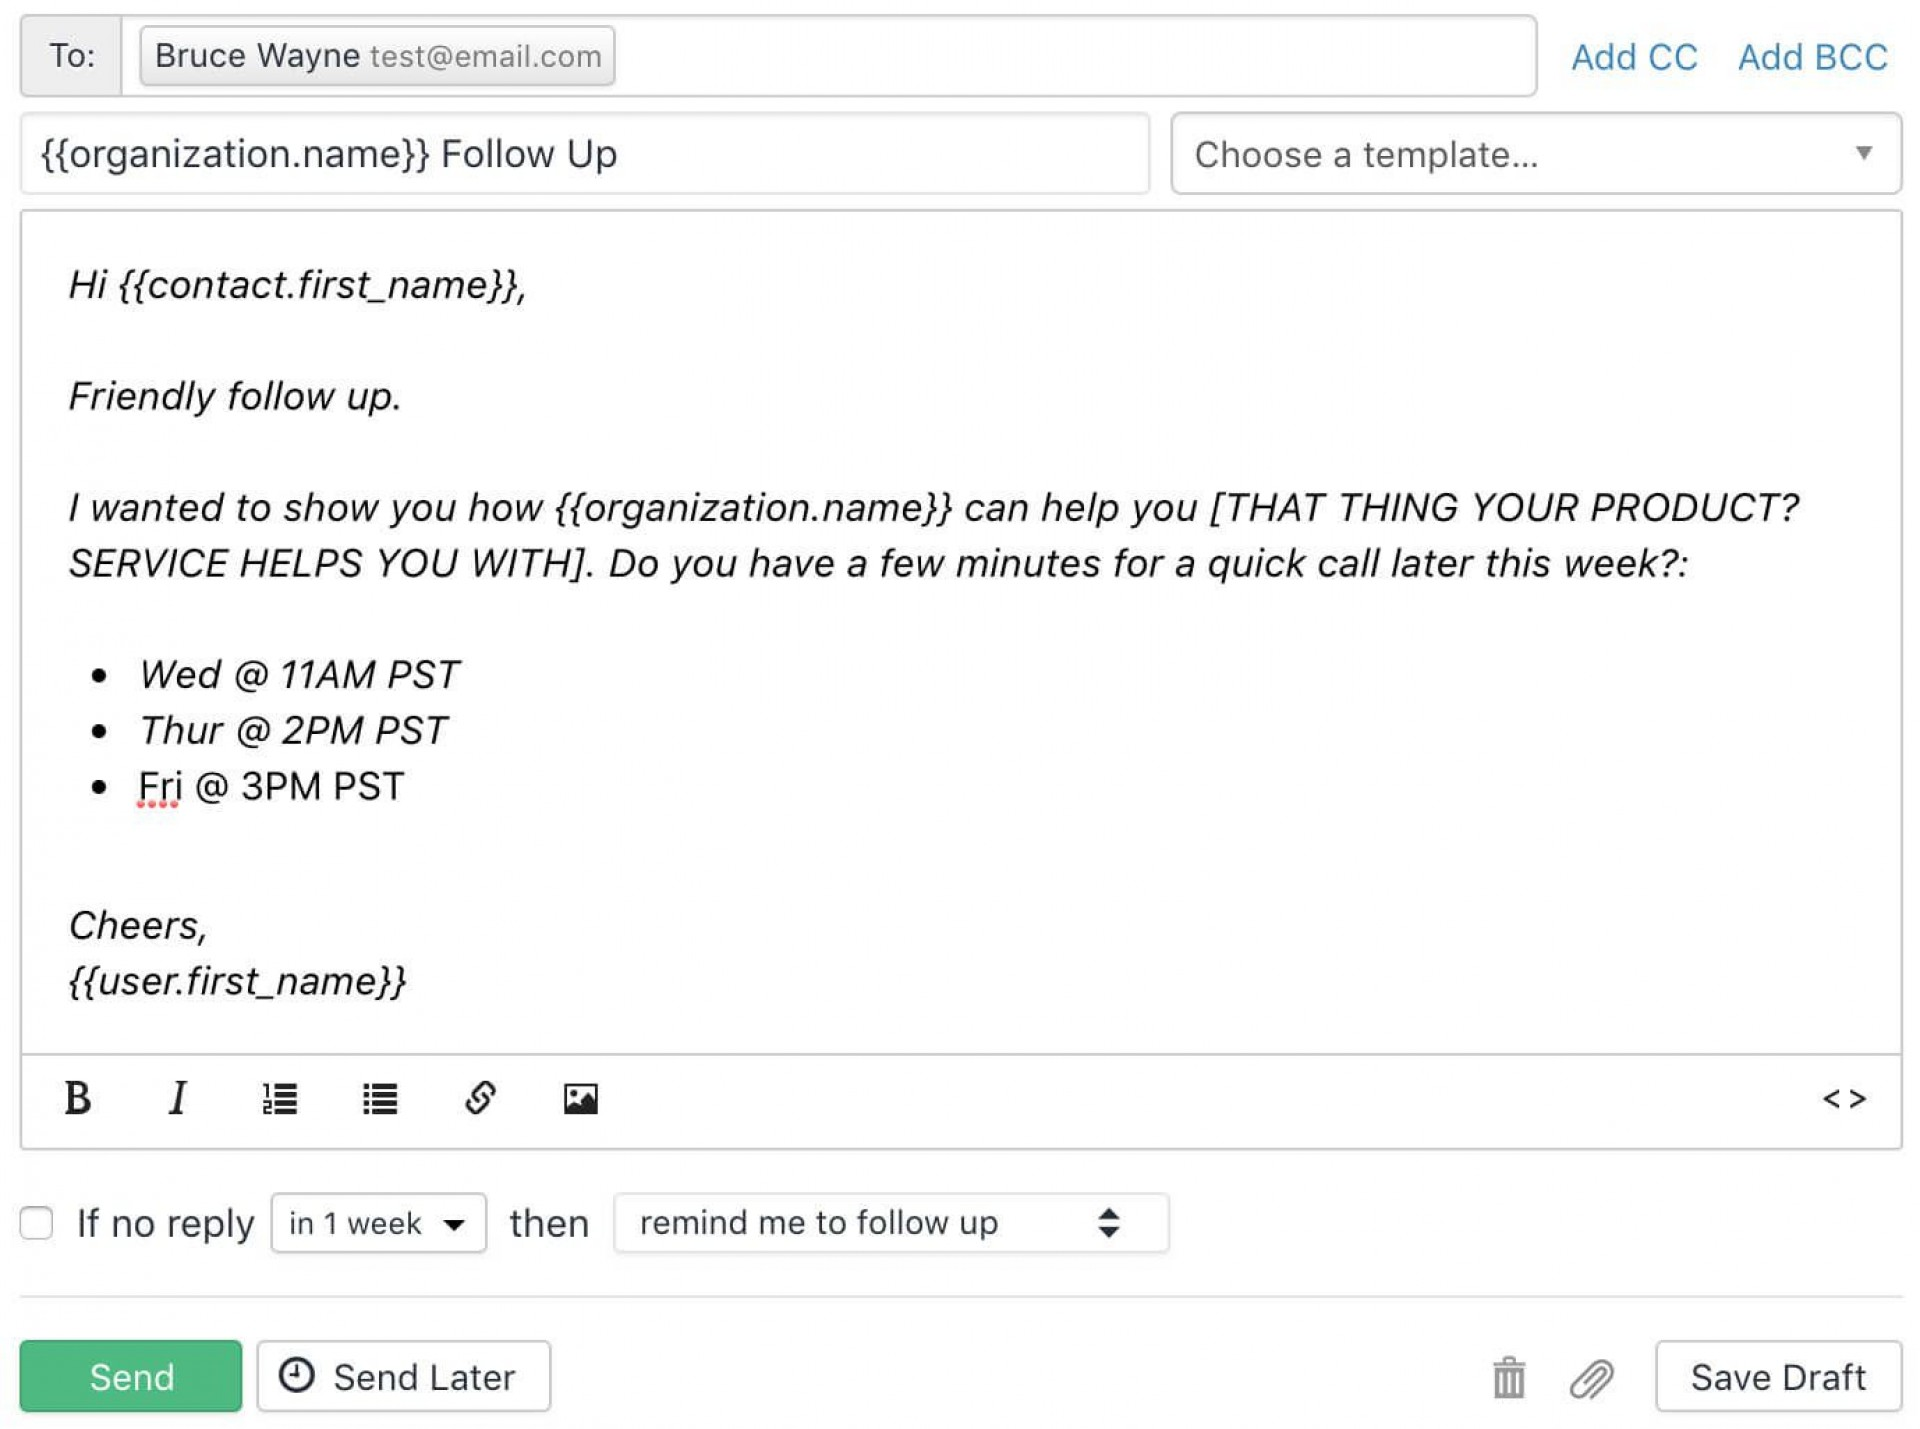 009 Archaicawful Follow Up Email After Sale Meeting Template Image 1920